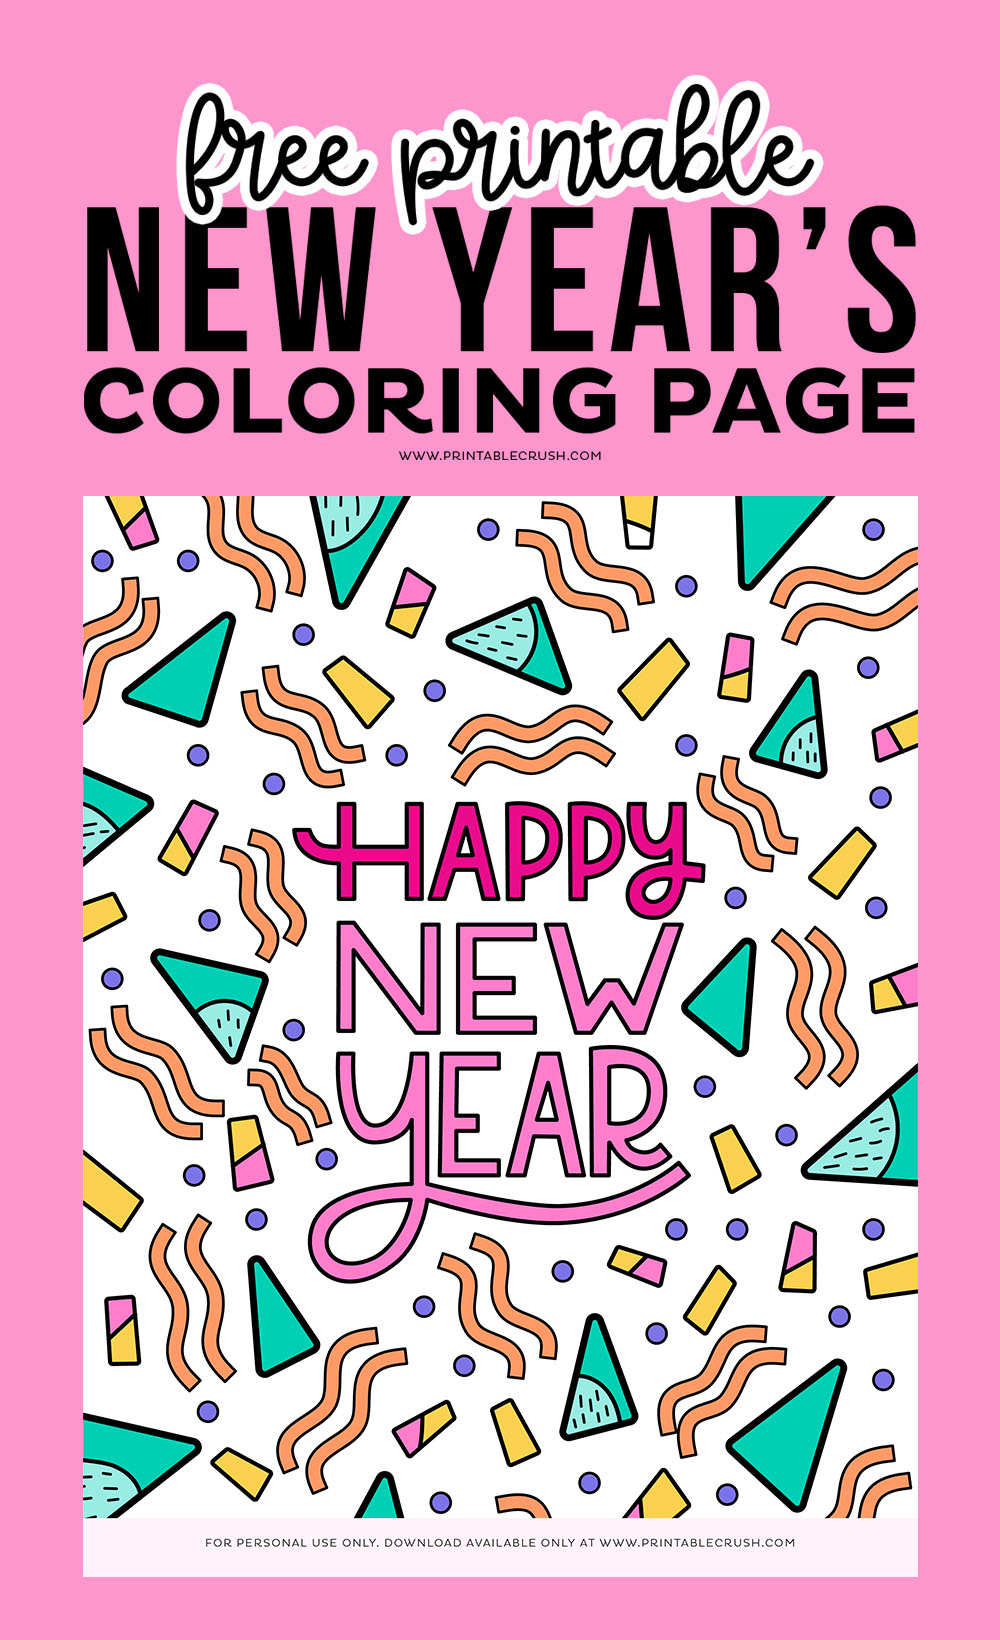 Free Printable New Year's Coloring Page - Printable Coloring Page - Free Printable - New Year Confetti Coloring Page - Printable Crush